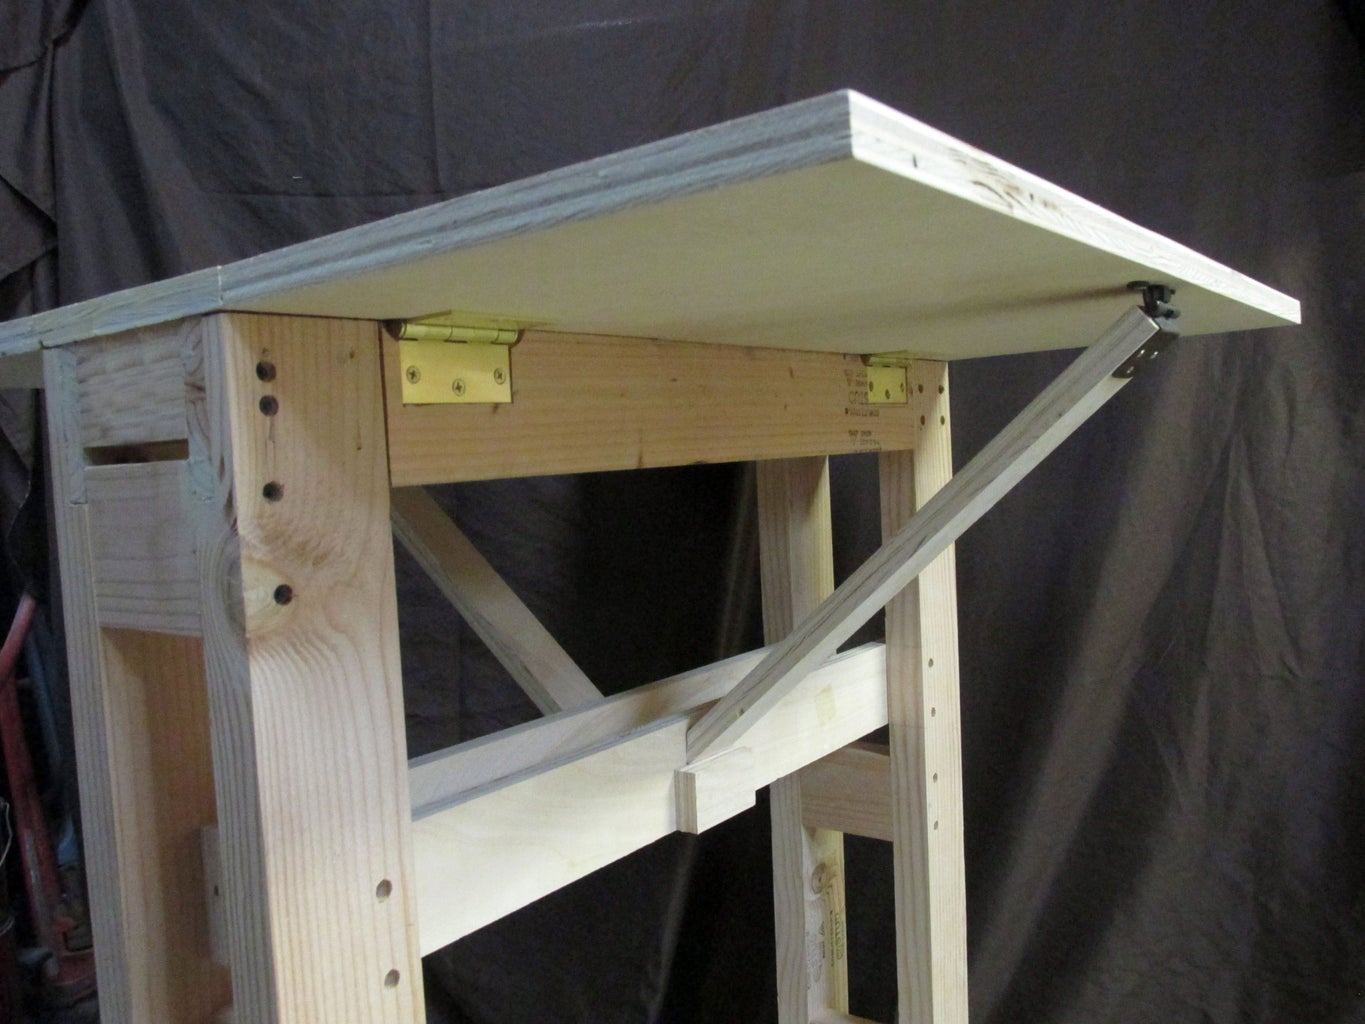 Adding Cross Braces and Table Leaf Supports